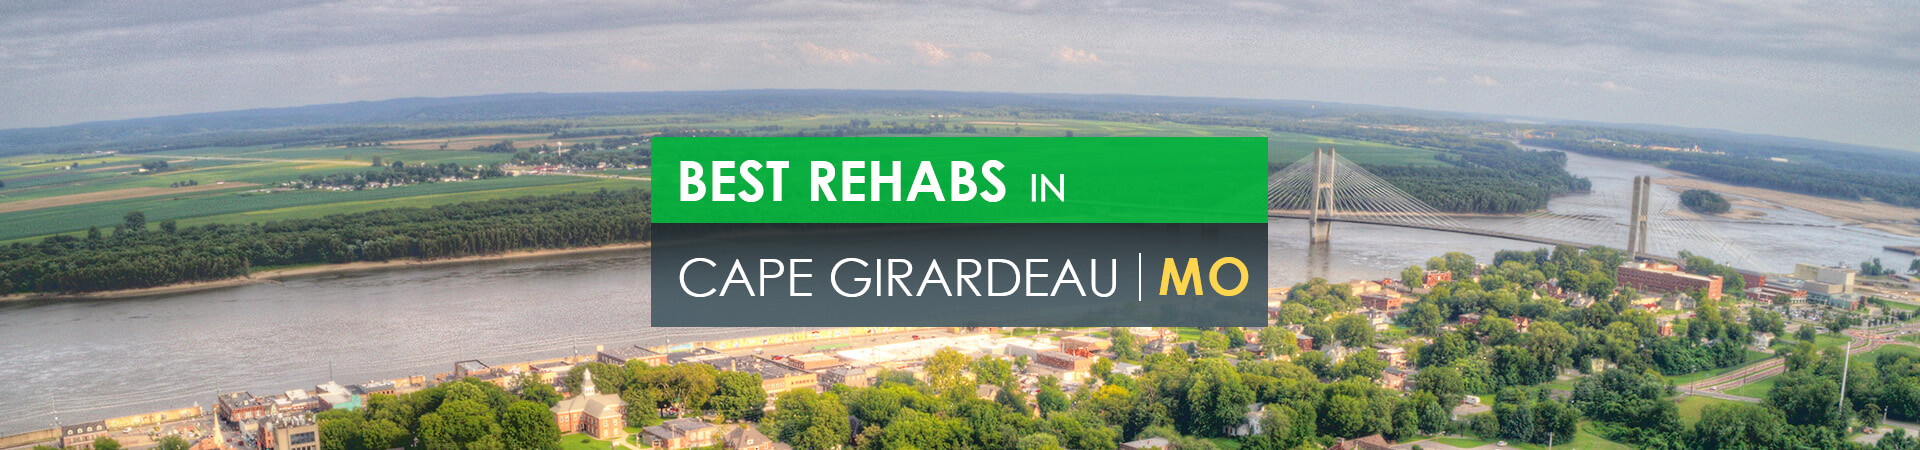 Best rehabs in Cape Girardeau, MO